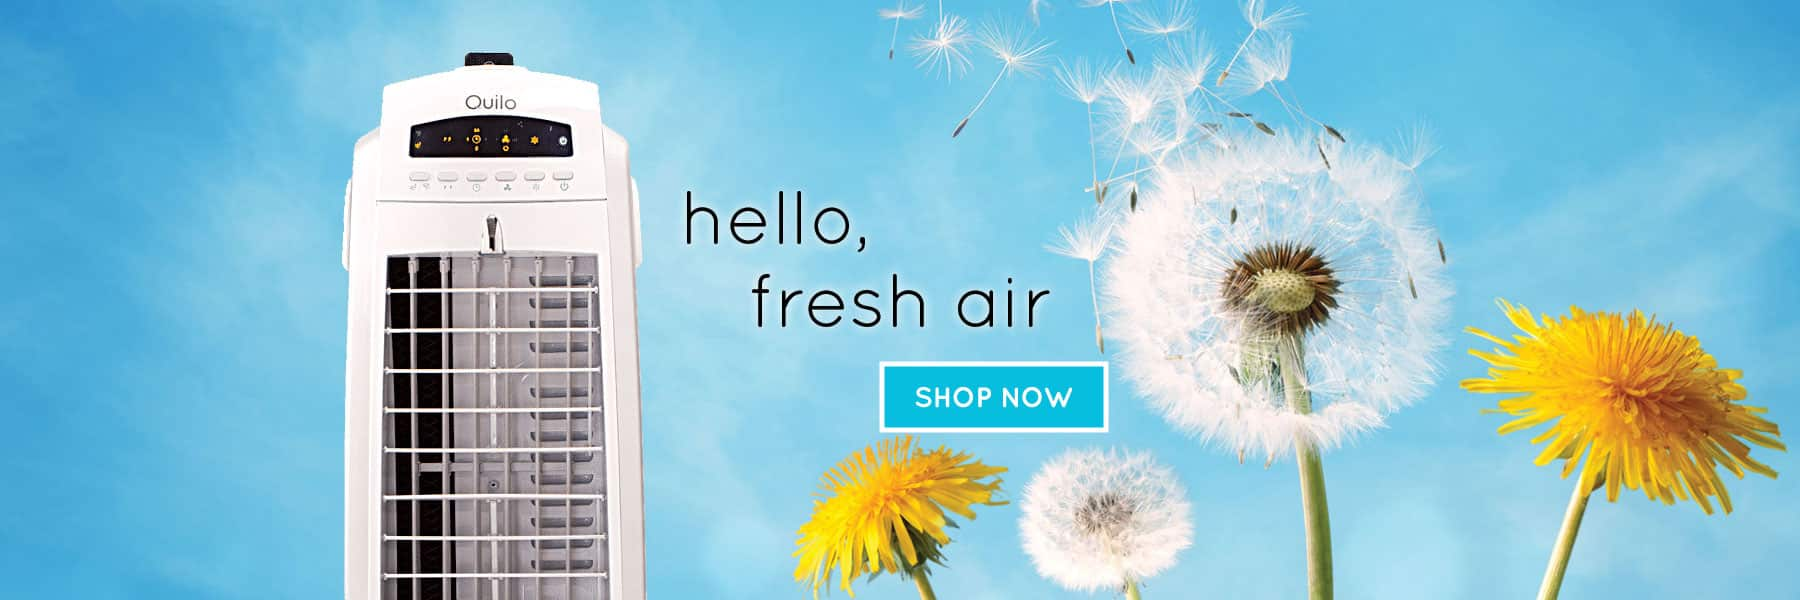 Air Cooling System For Home, Quiet Room Air Cooler Fan - Quilo